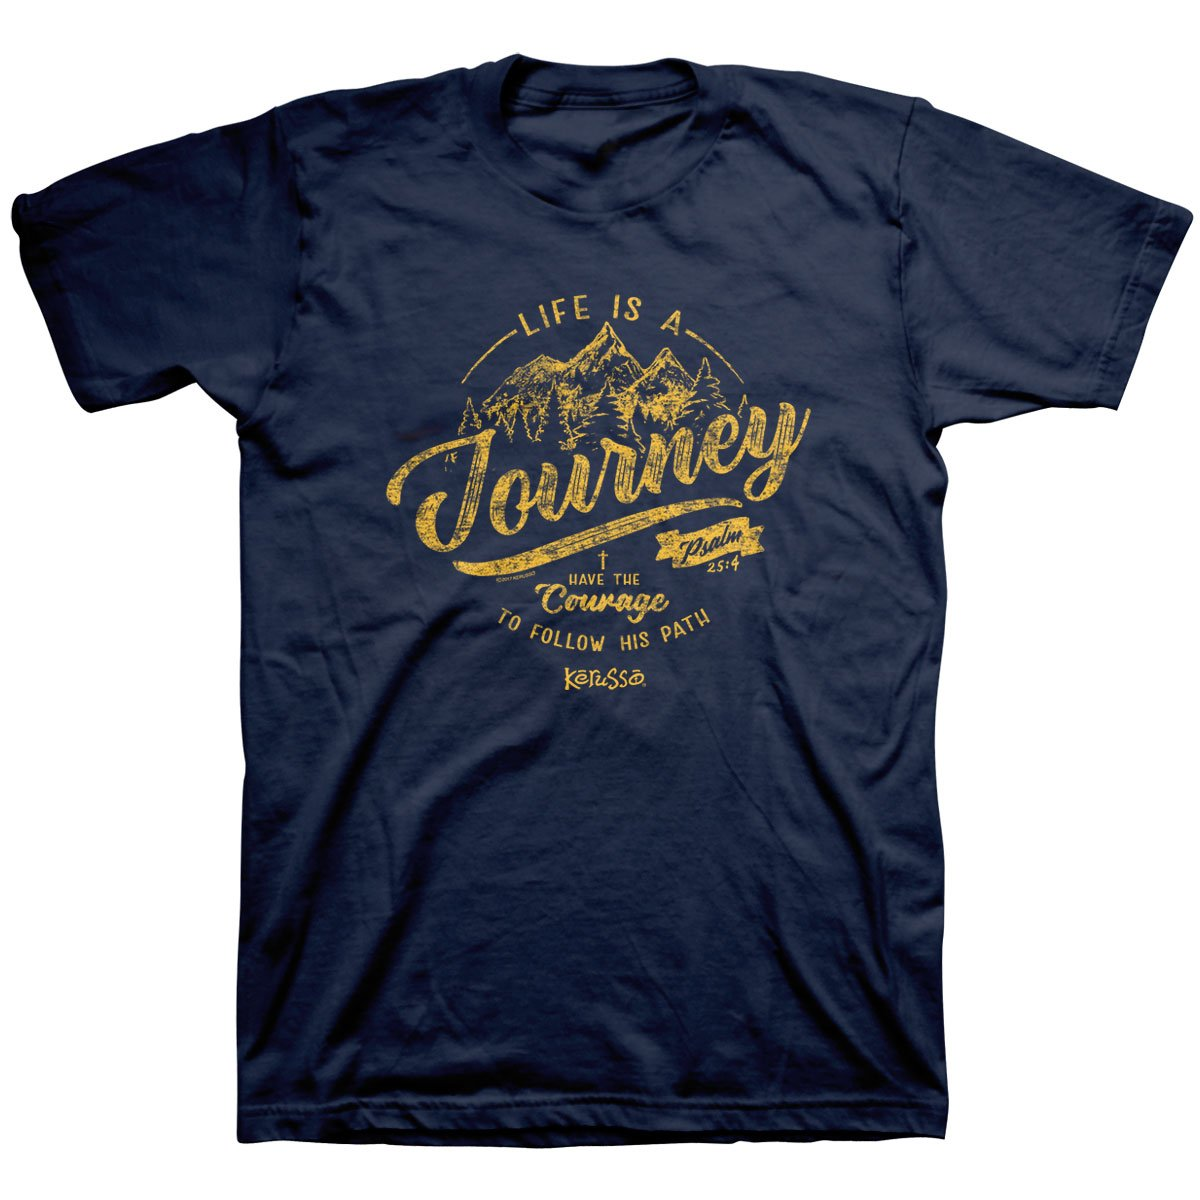 Kerusso Journey Adult T-Shirt-X-Large - Christian Fashion Gifts